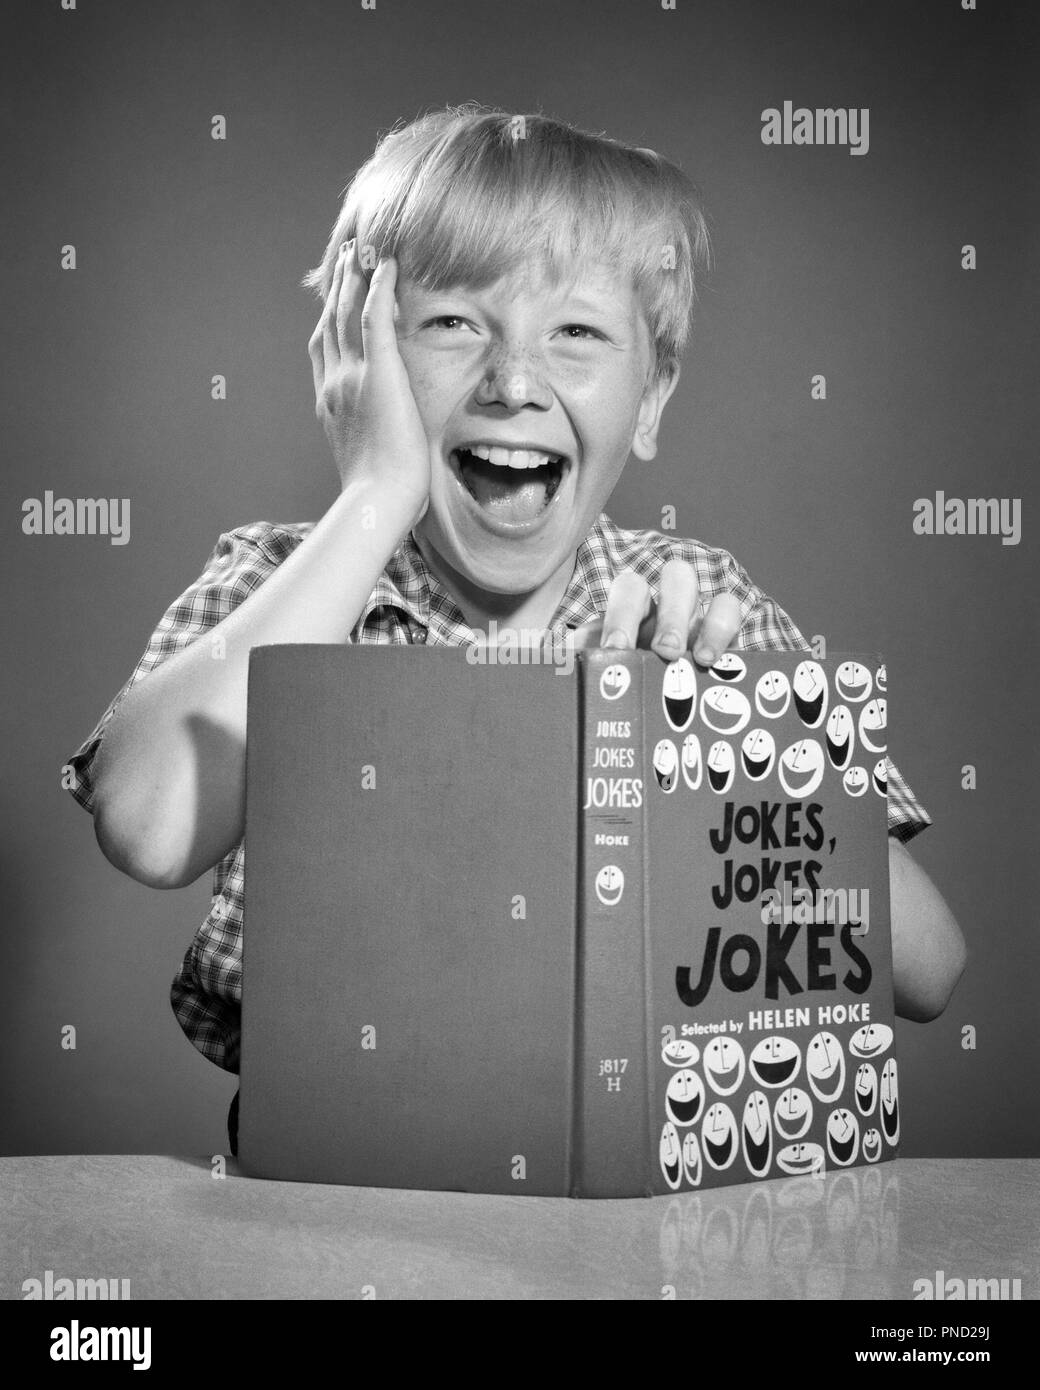 1950s BLOND BOY HOLDING HAND TO HEAD LAUGHING OUT LOUD LOOKING AT CAMERA READING BOOK FULL OF JOKES - j6441 DEB001 HARS JOY LIFESTYLE STUDIO SHOT HOME LIFE HALF-LENGTH INSPIRATION MALES FRECKLES ENTERTAINMENT EXPRESSIONS B&W EYE CONTACT SUCCESS HAPPINESS HEAD AND SHOULDERS CHEERFUL DISCOVERY YOUNG MAN EXCITEMENT TELLING COMEDIAN OF OPPORTUNITY SMILES CONCEPTUAL COMEDY IMAGINATION JOYFUL OVER THE TOP DEB001 GROWTH IDEAS JUVENILES RELAXATION RIOTOUS BLACK AND WHITE CAUCASIAN ETHNICITY JOKE OLD FASHIONED - Stock Image